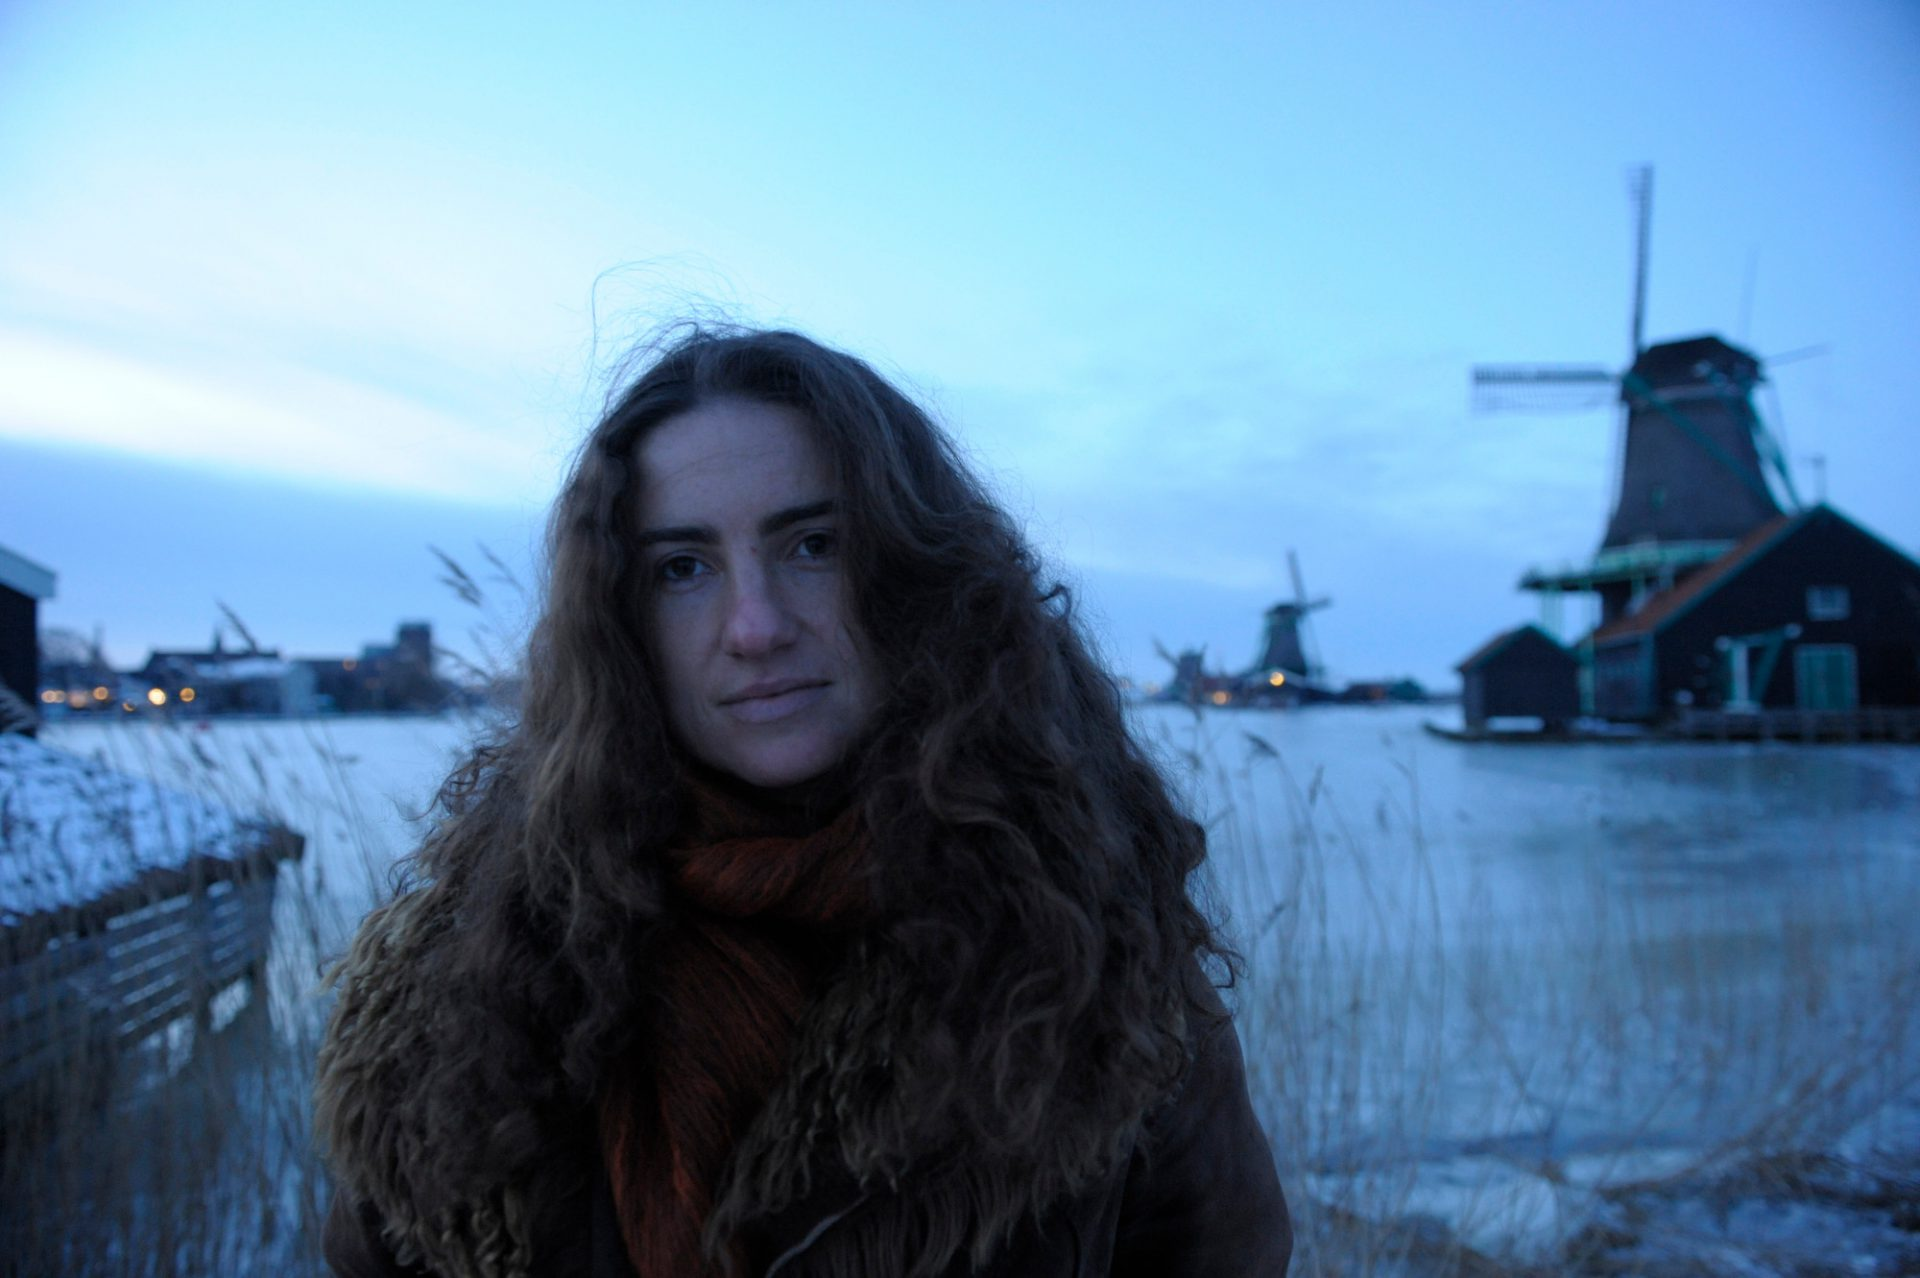 """Photo: A young woman stand in front of """"Zaanse Schans"""", a historic windmill area, in Amsterdam, The Netherlands."""